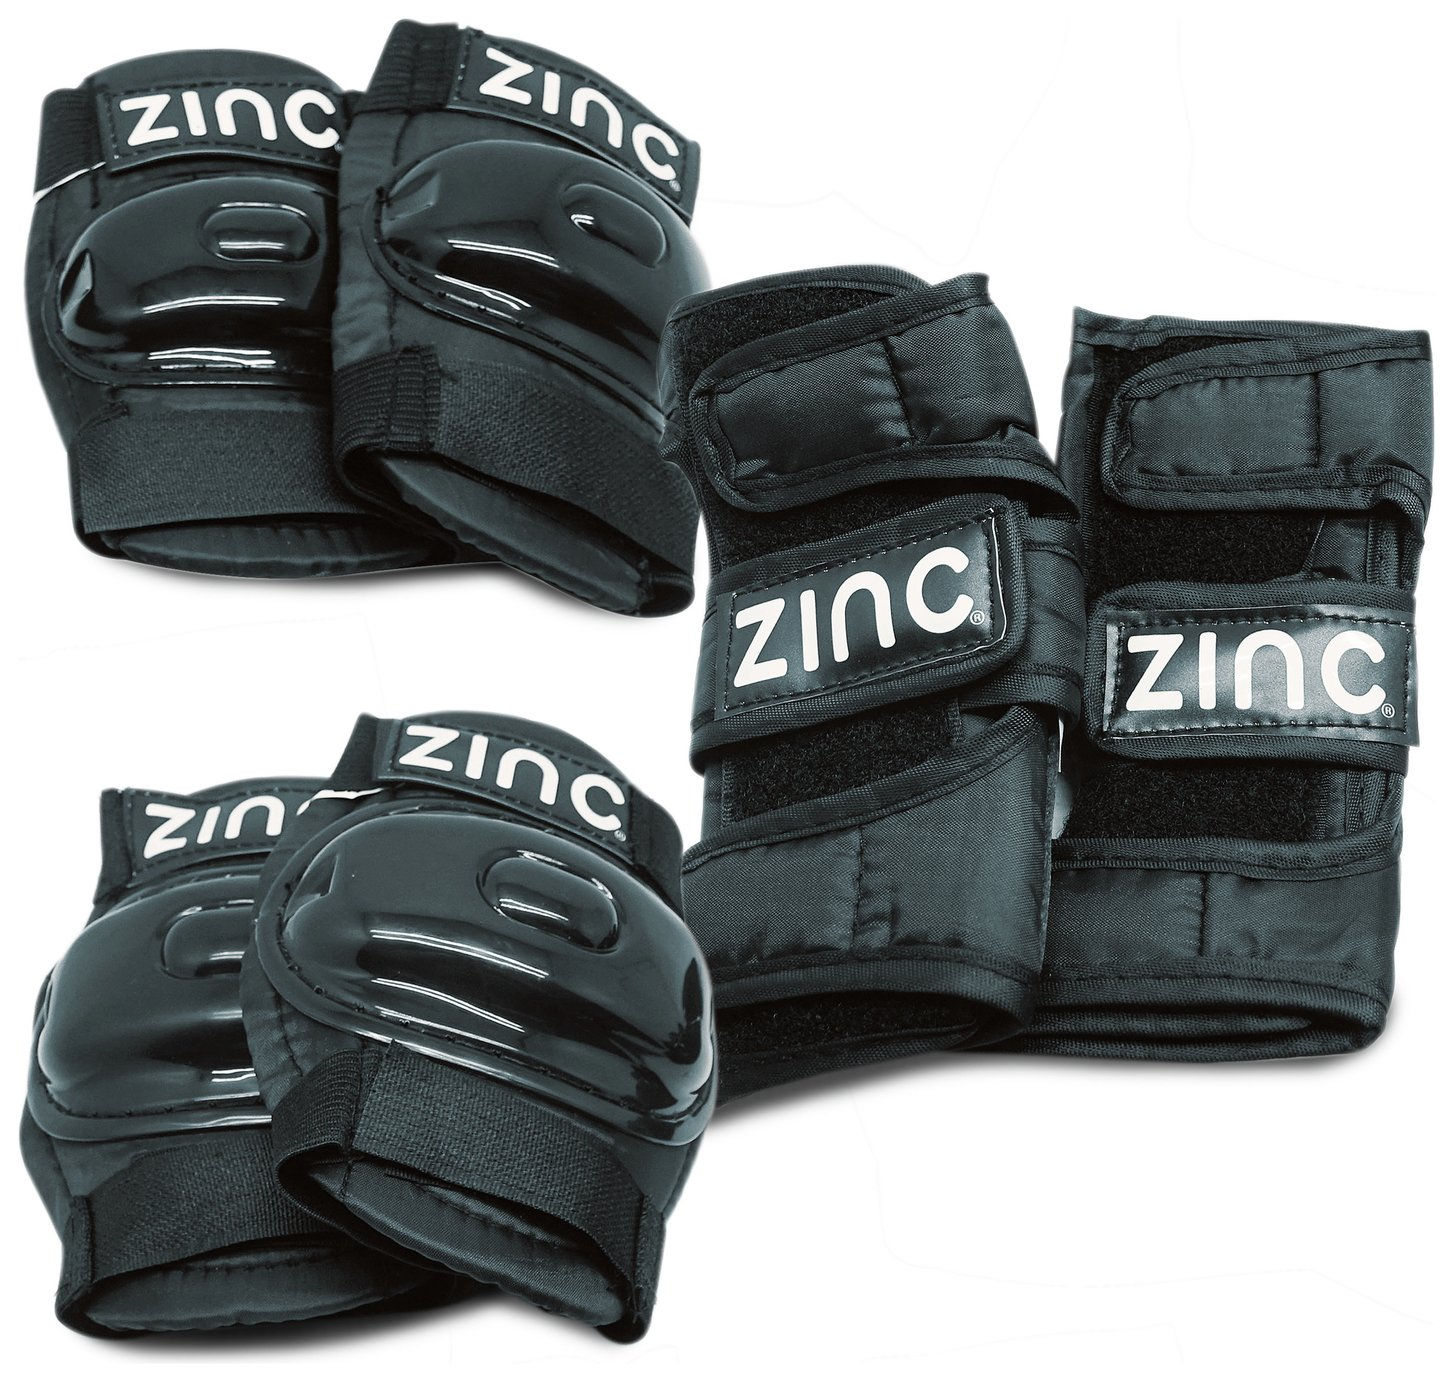 Zinc Protection Bike Safety Pads